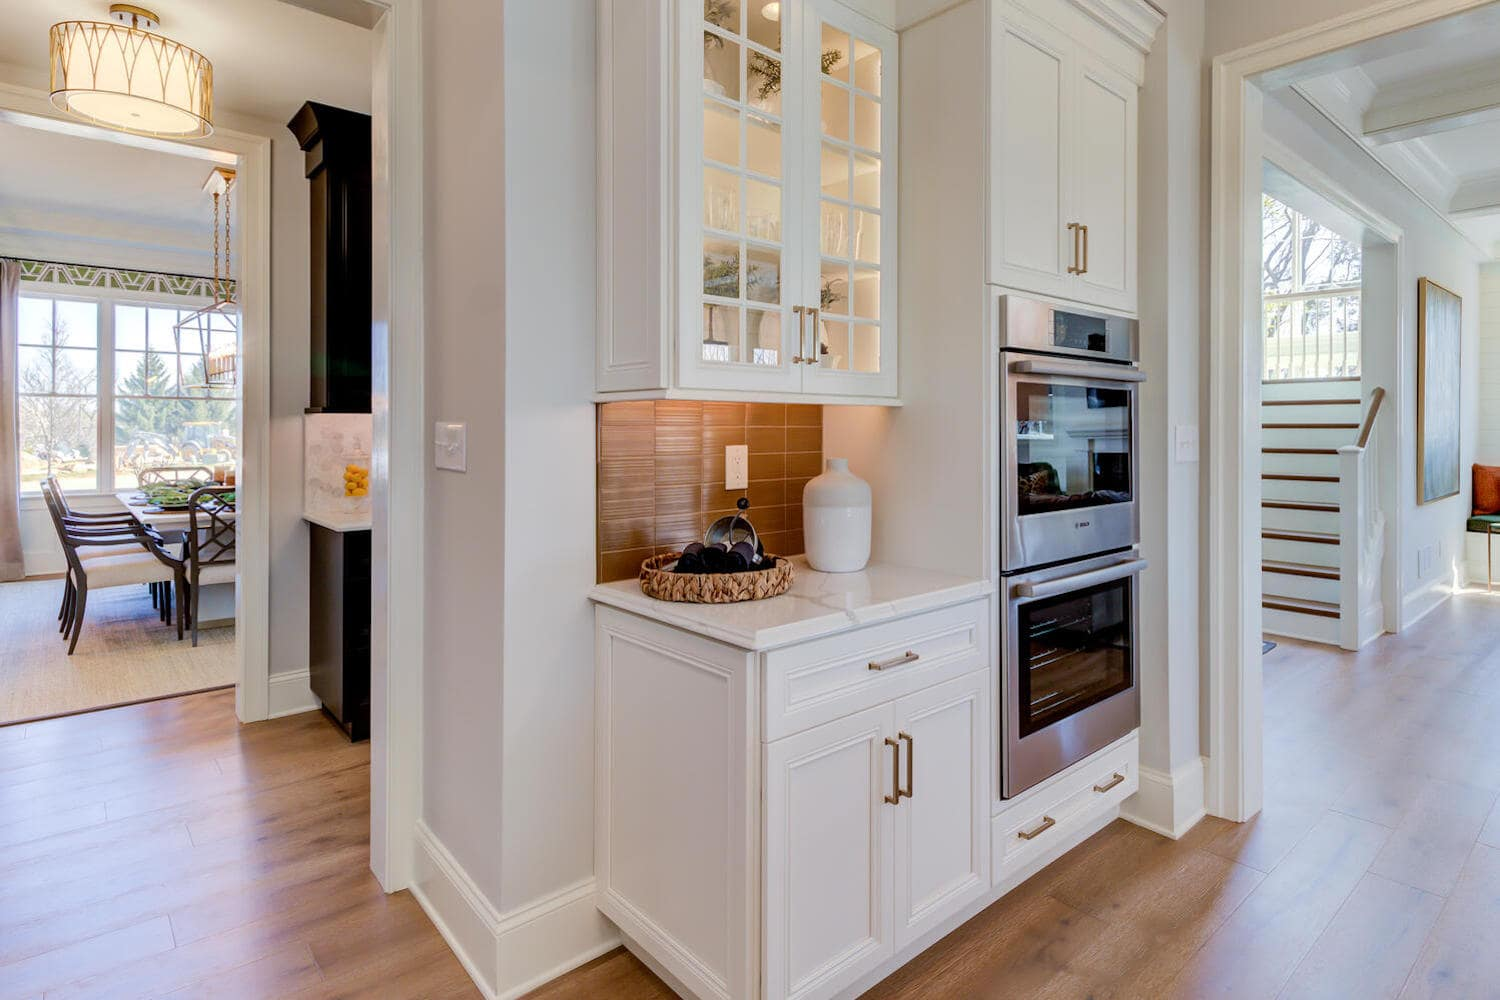 Interior of a new home from Bentley Homes.